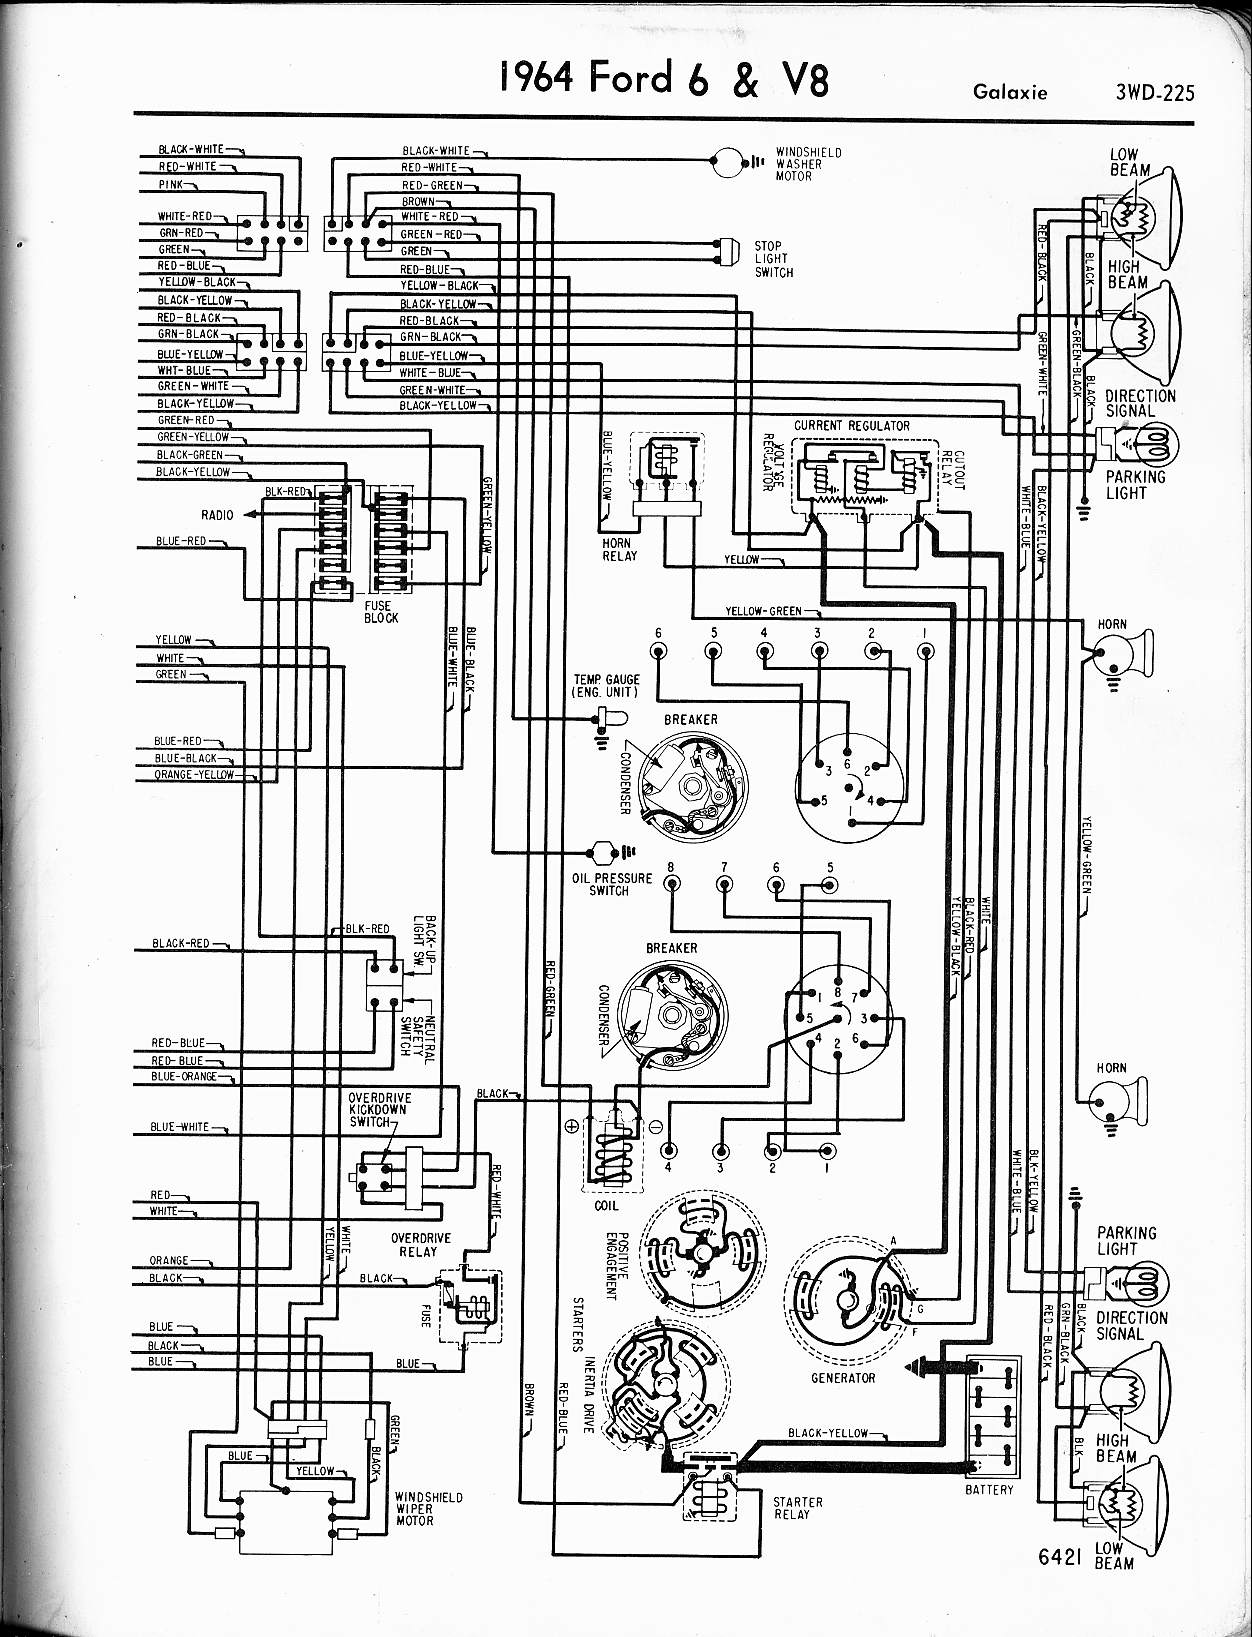 1964 Ford Galaxie Ignition Wiring - Wiring Diagram K8 Galaxy Saturn Wiring Diagram on